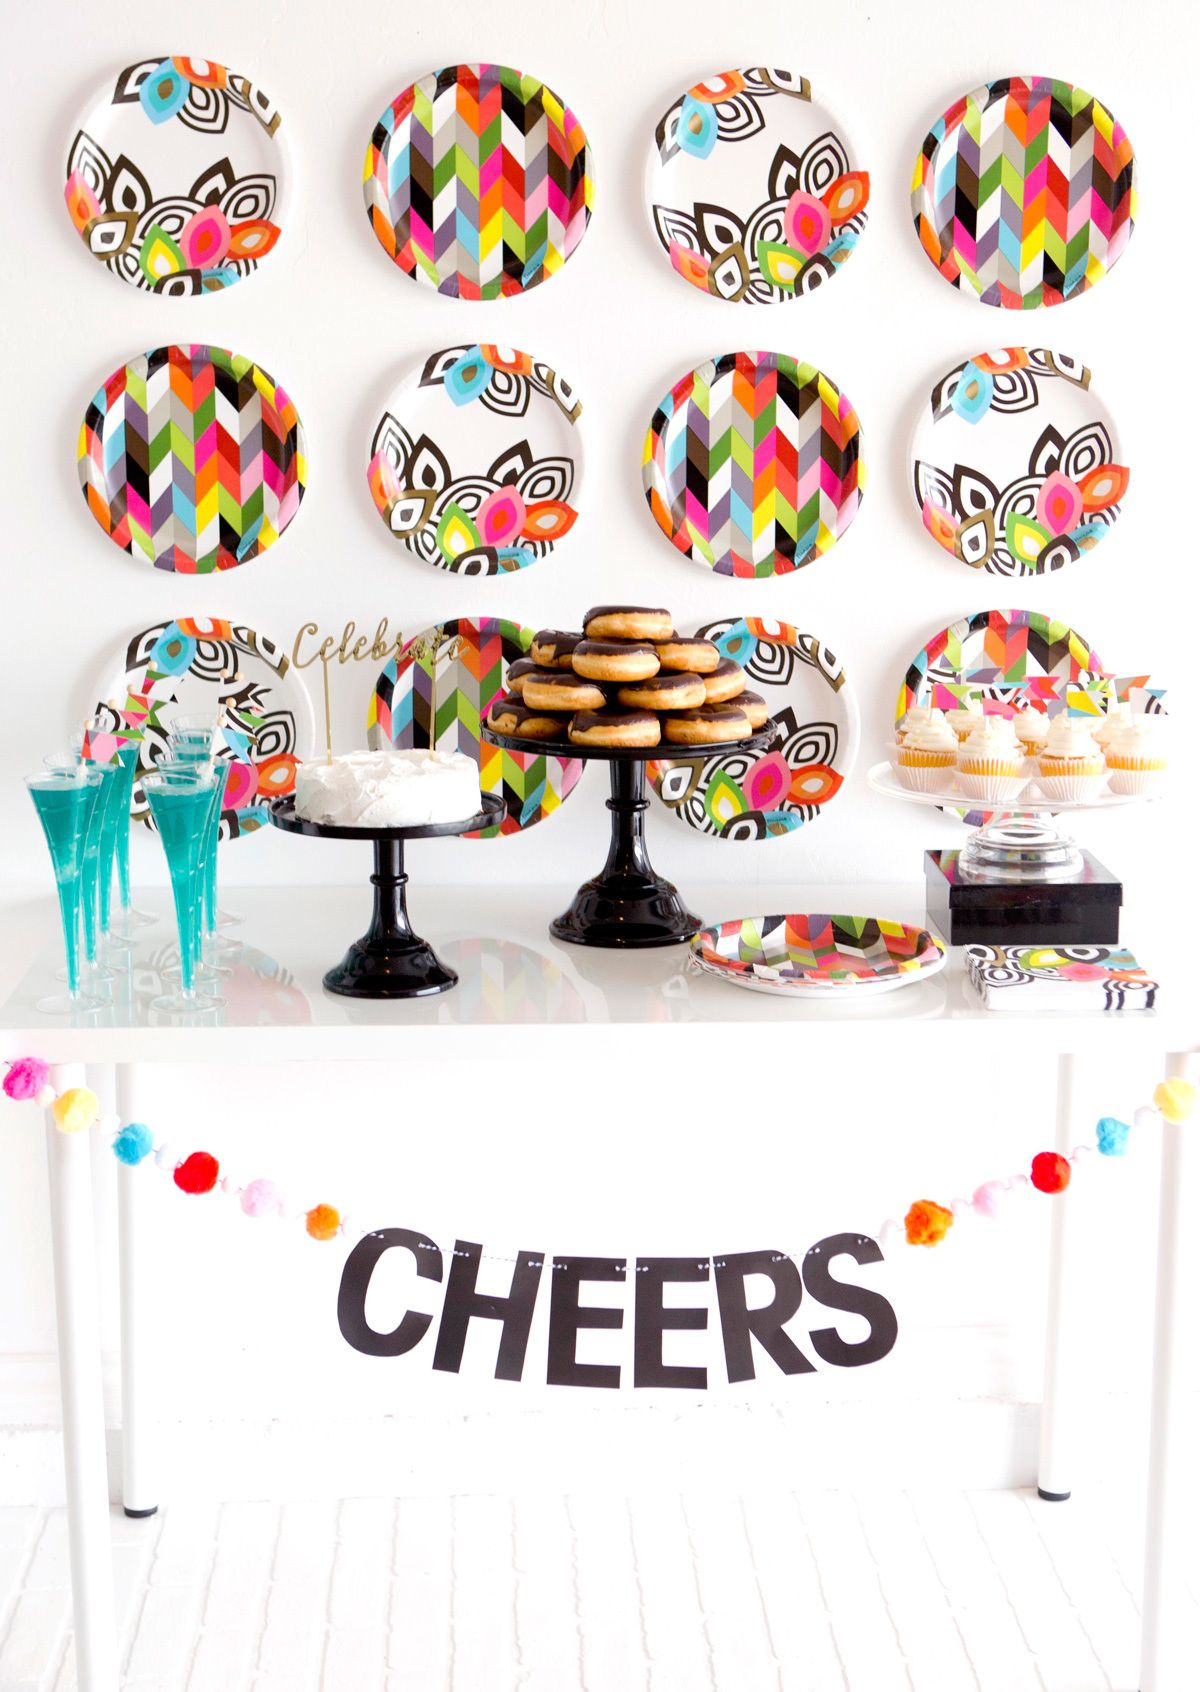 Fun Cocktail Party Ideas Part - 42: Adult Party Idea - Modern Cocktail Party - Bright Fun Patterns